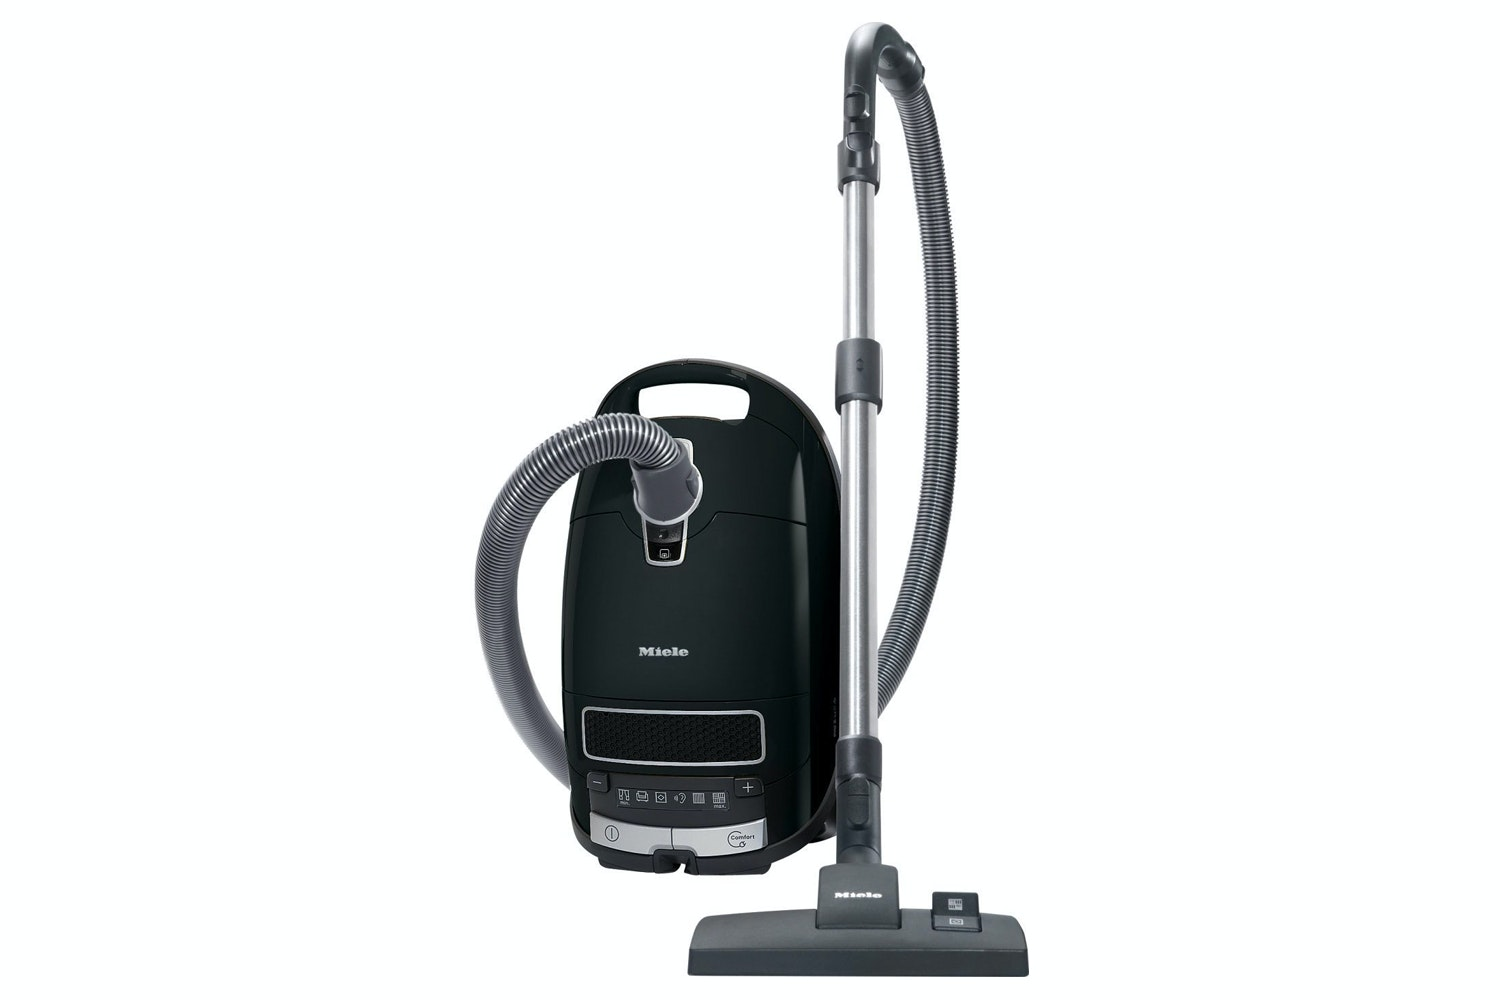 Complete C3 PowerLine - SGDF4  Cylinder vacuum cleaner   With maximum suction power and foot controls for thorough, convenient vacuuming.